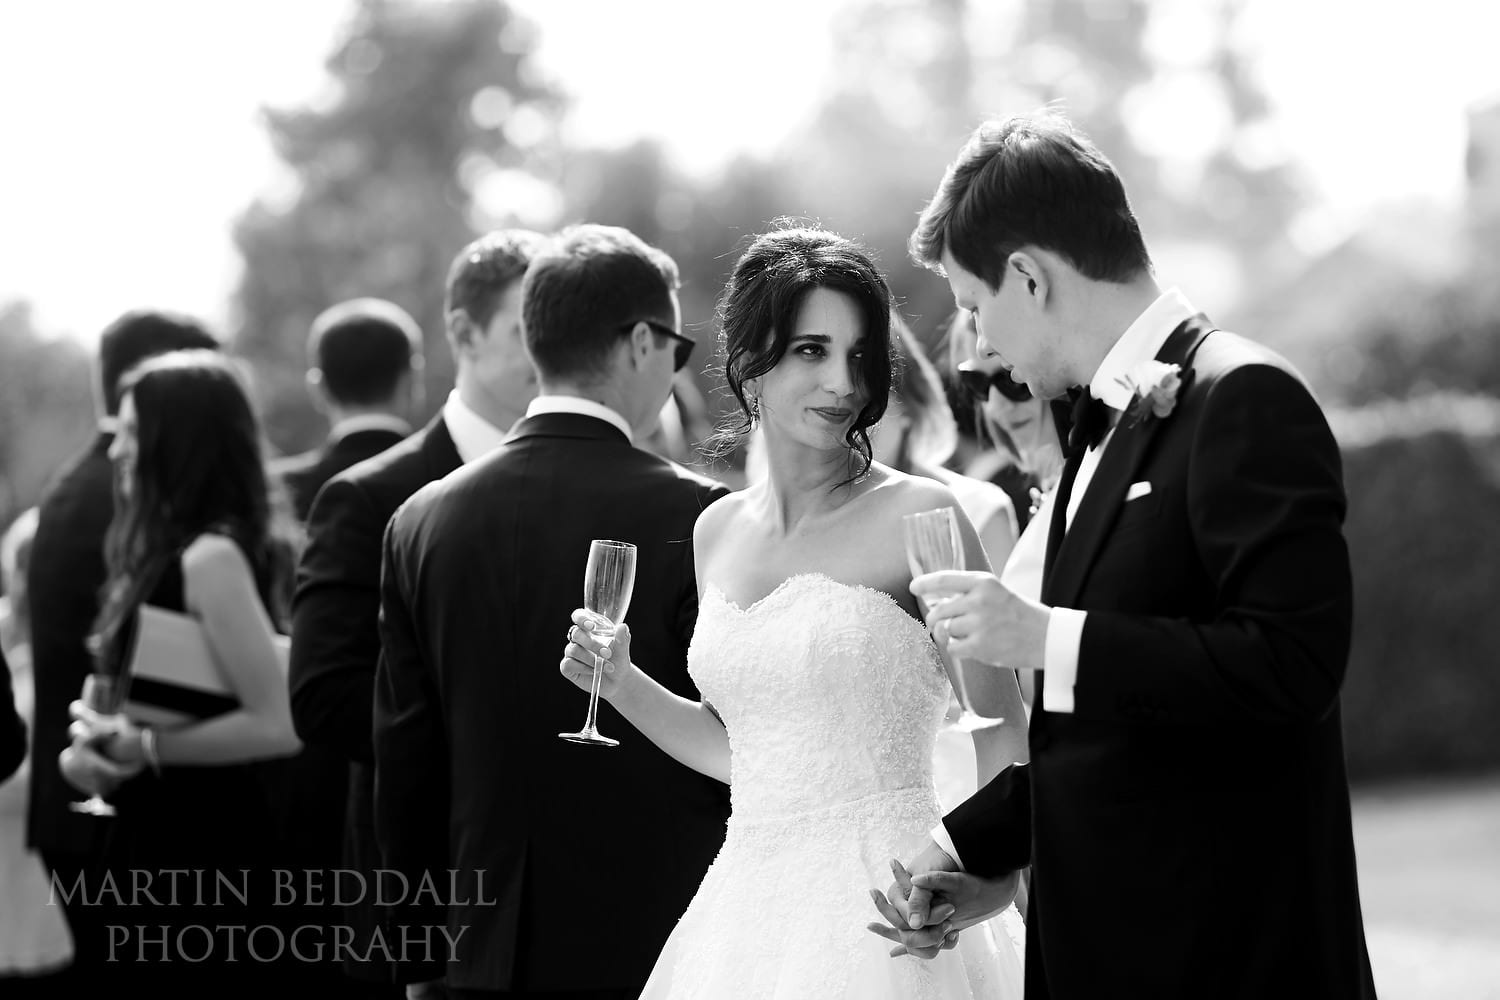 Bride and groom at Goodwood House wedding reception